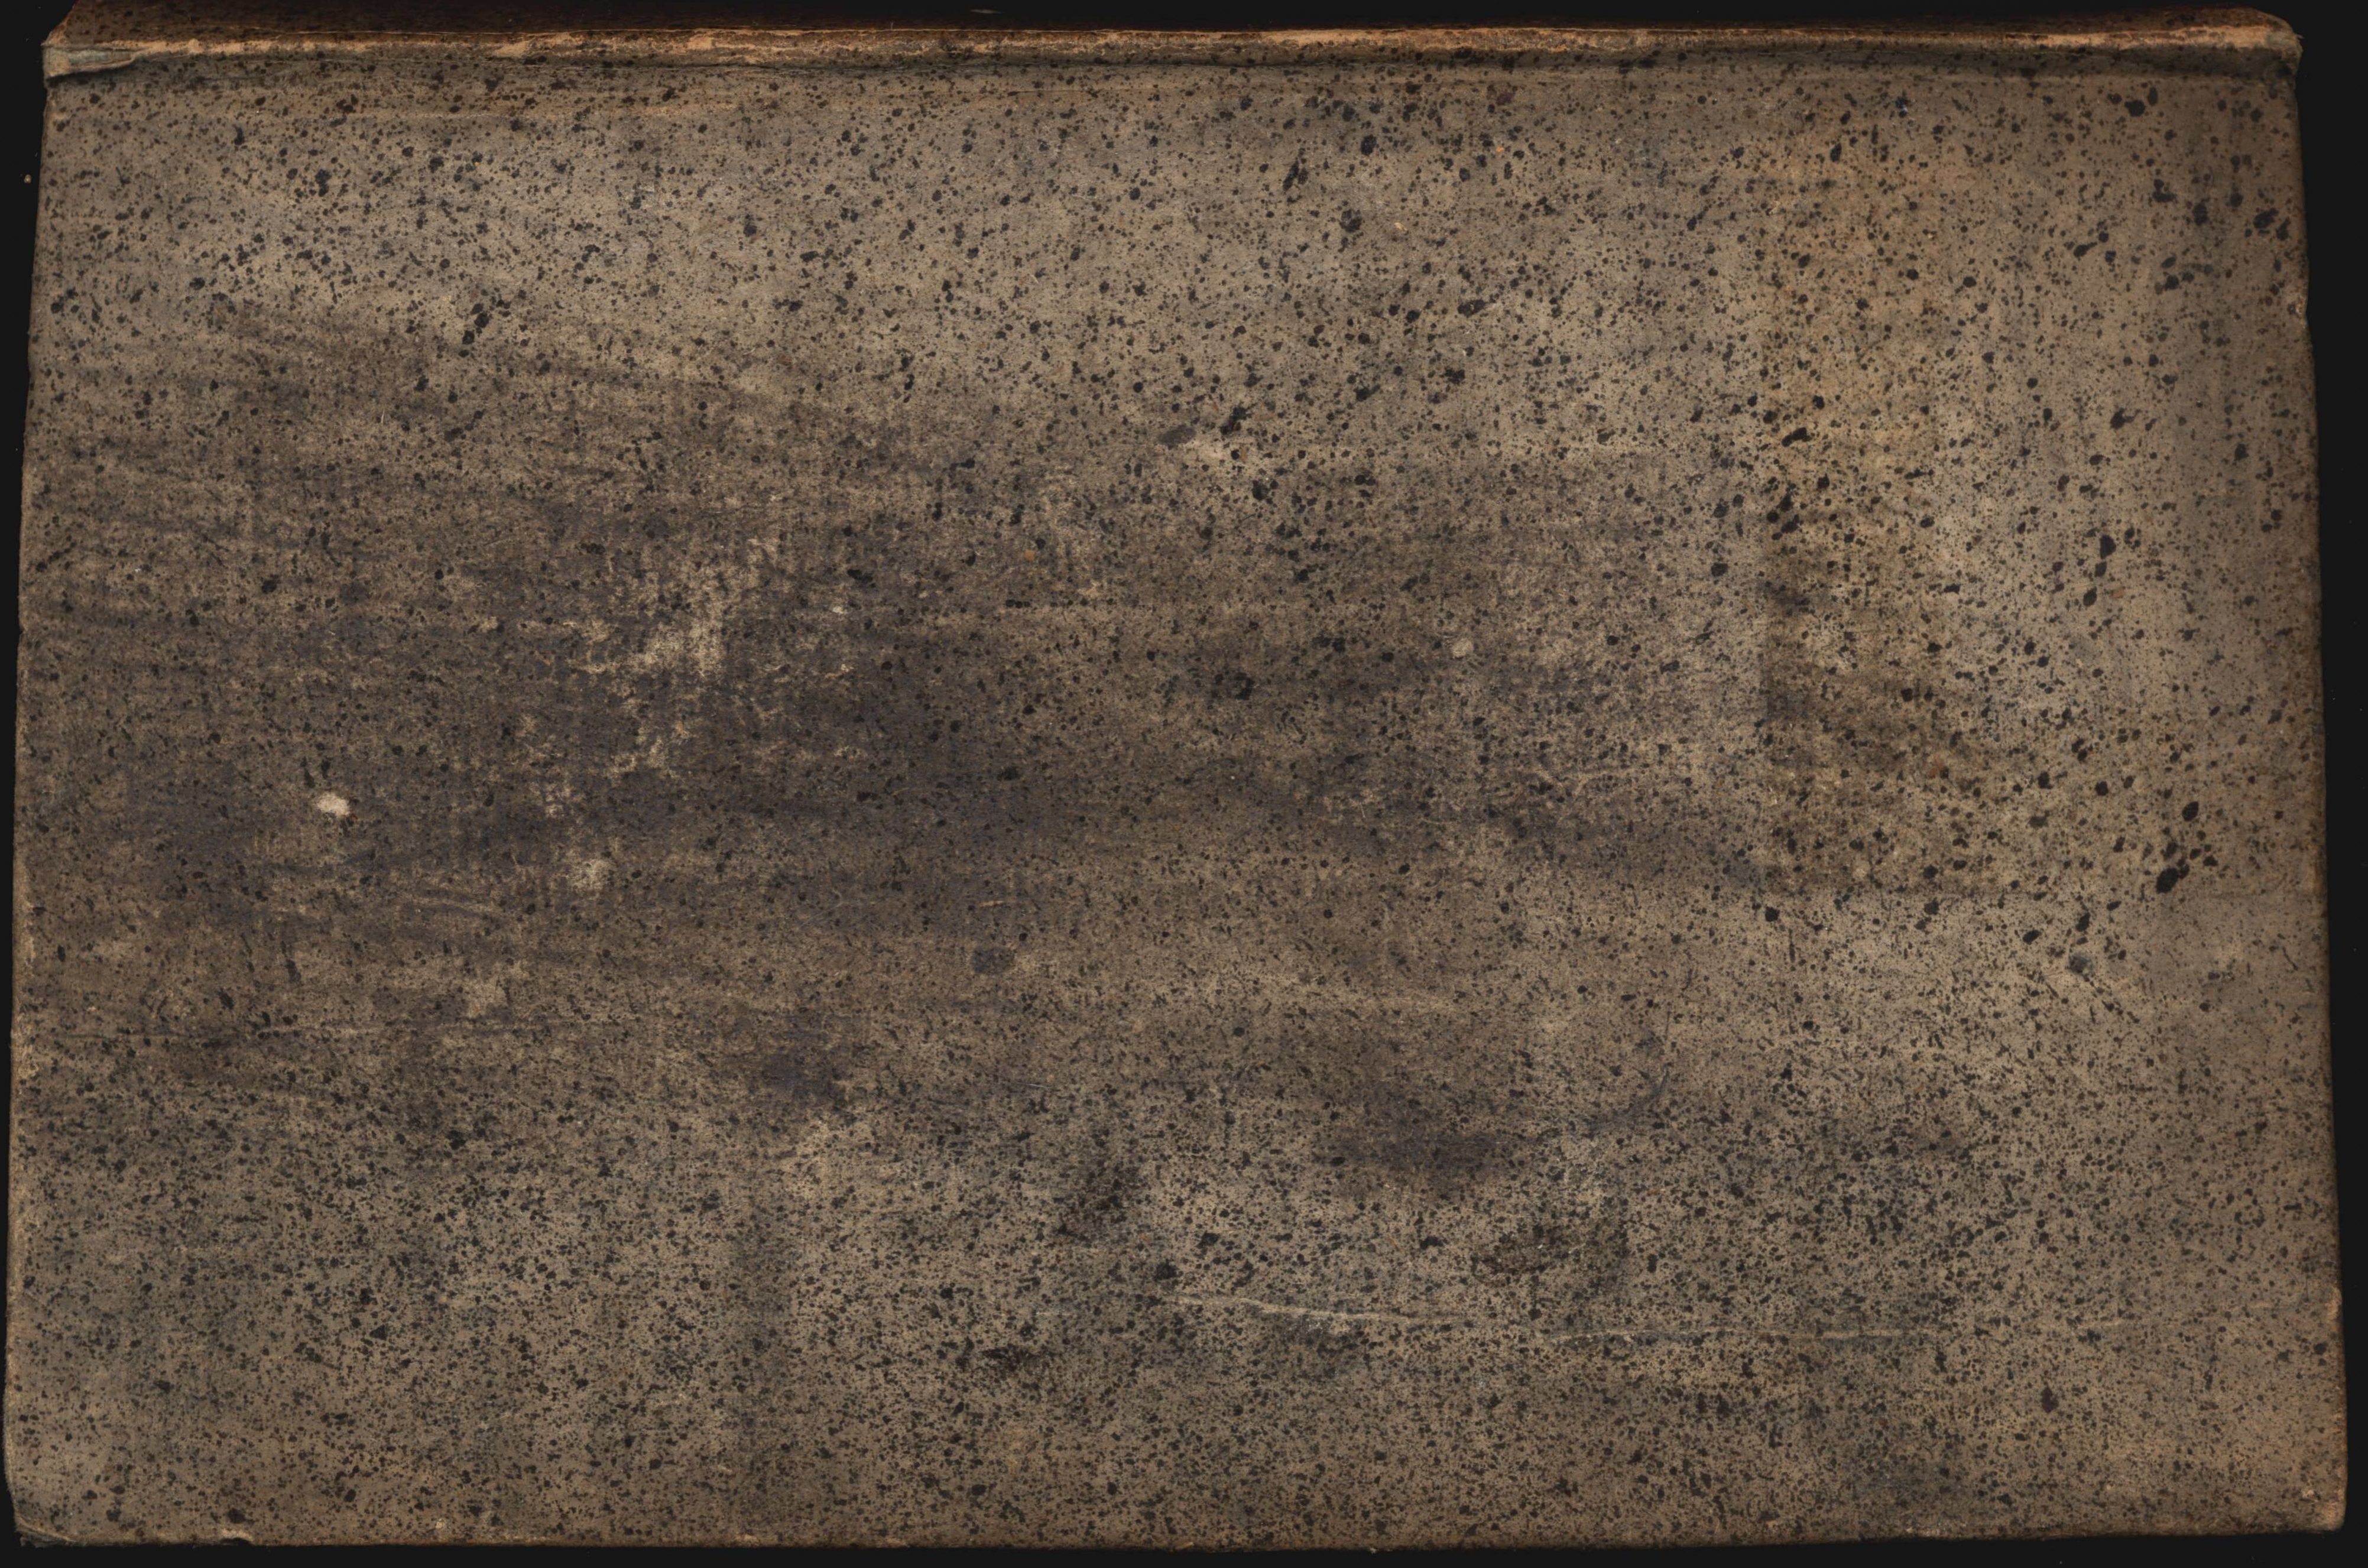 Creased Book Cover Texture : Vintage book cover texture g texturas